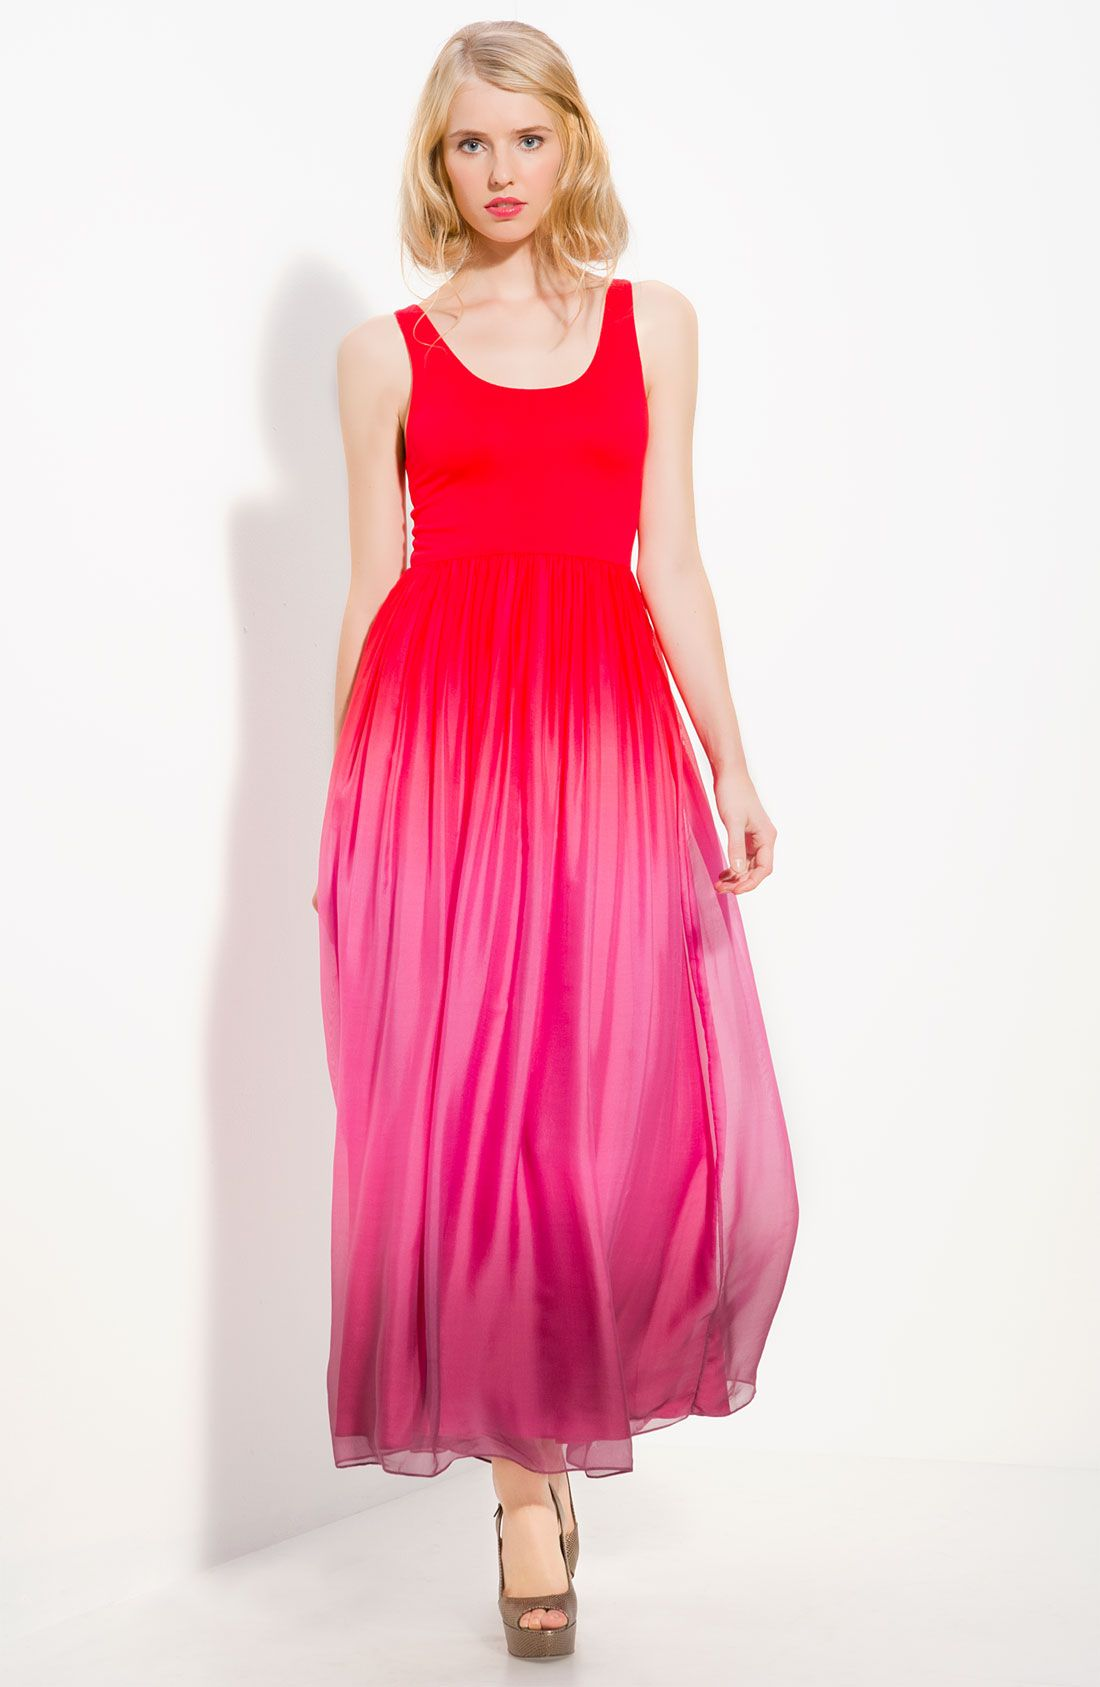 Alice and Olivia ombre maxi | Style | Pinterest | Ponerse y Cosas